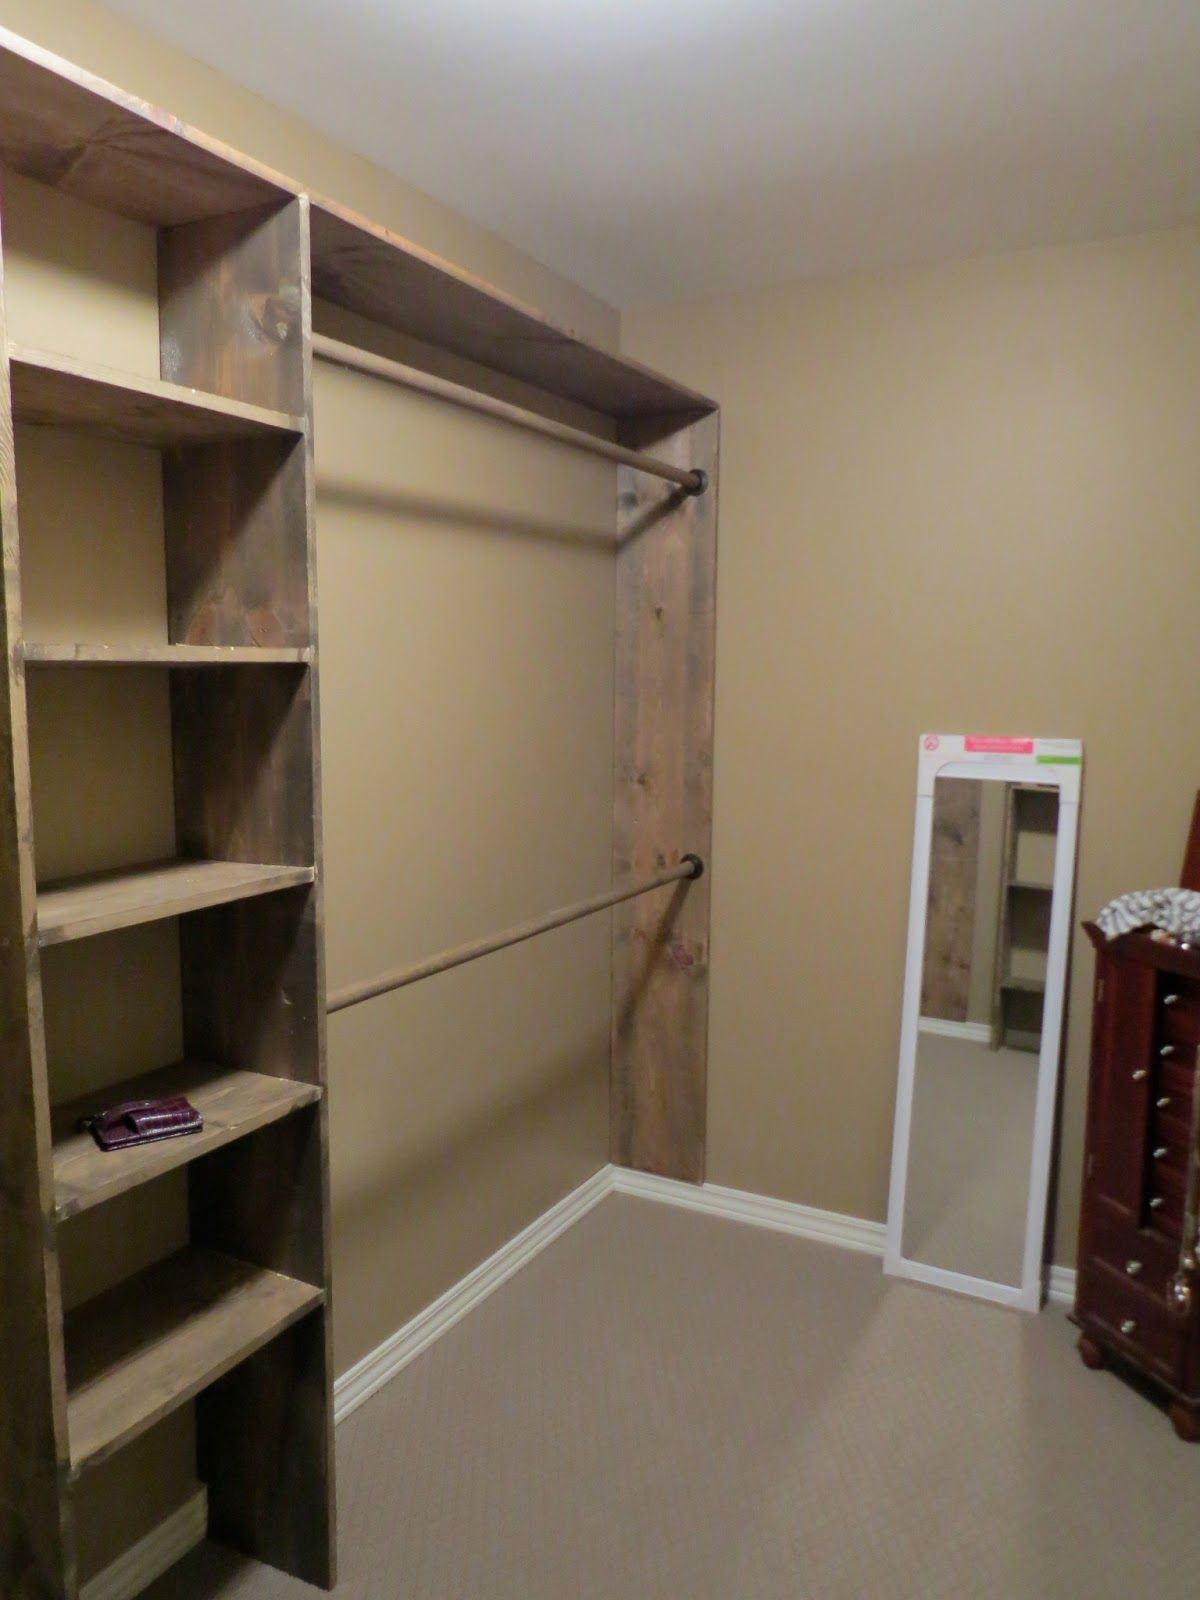 Let 39 s just build a house walk in closets no more living for How to build a walk in closet step by step